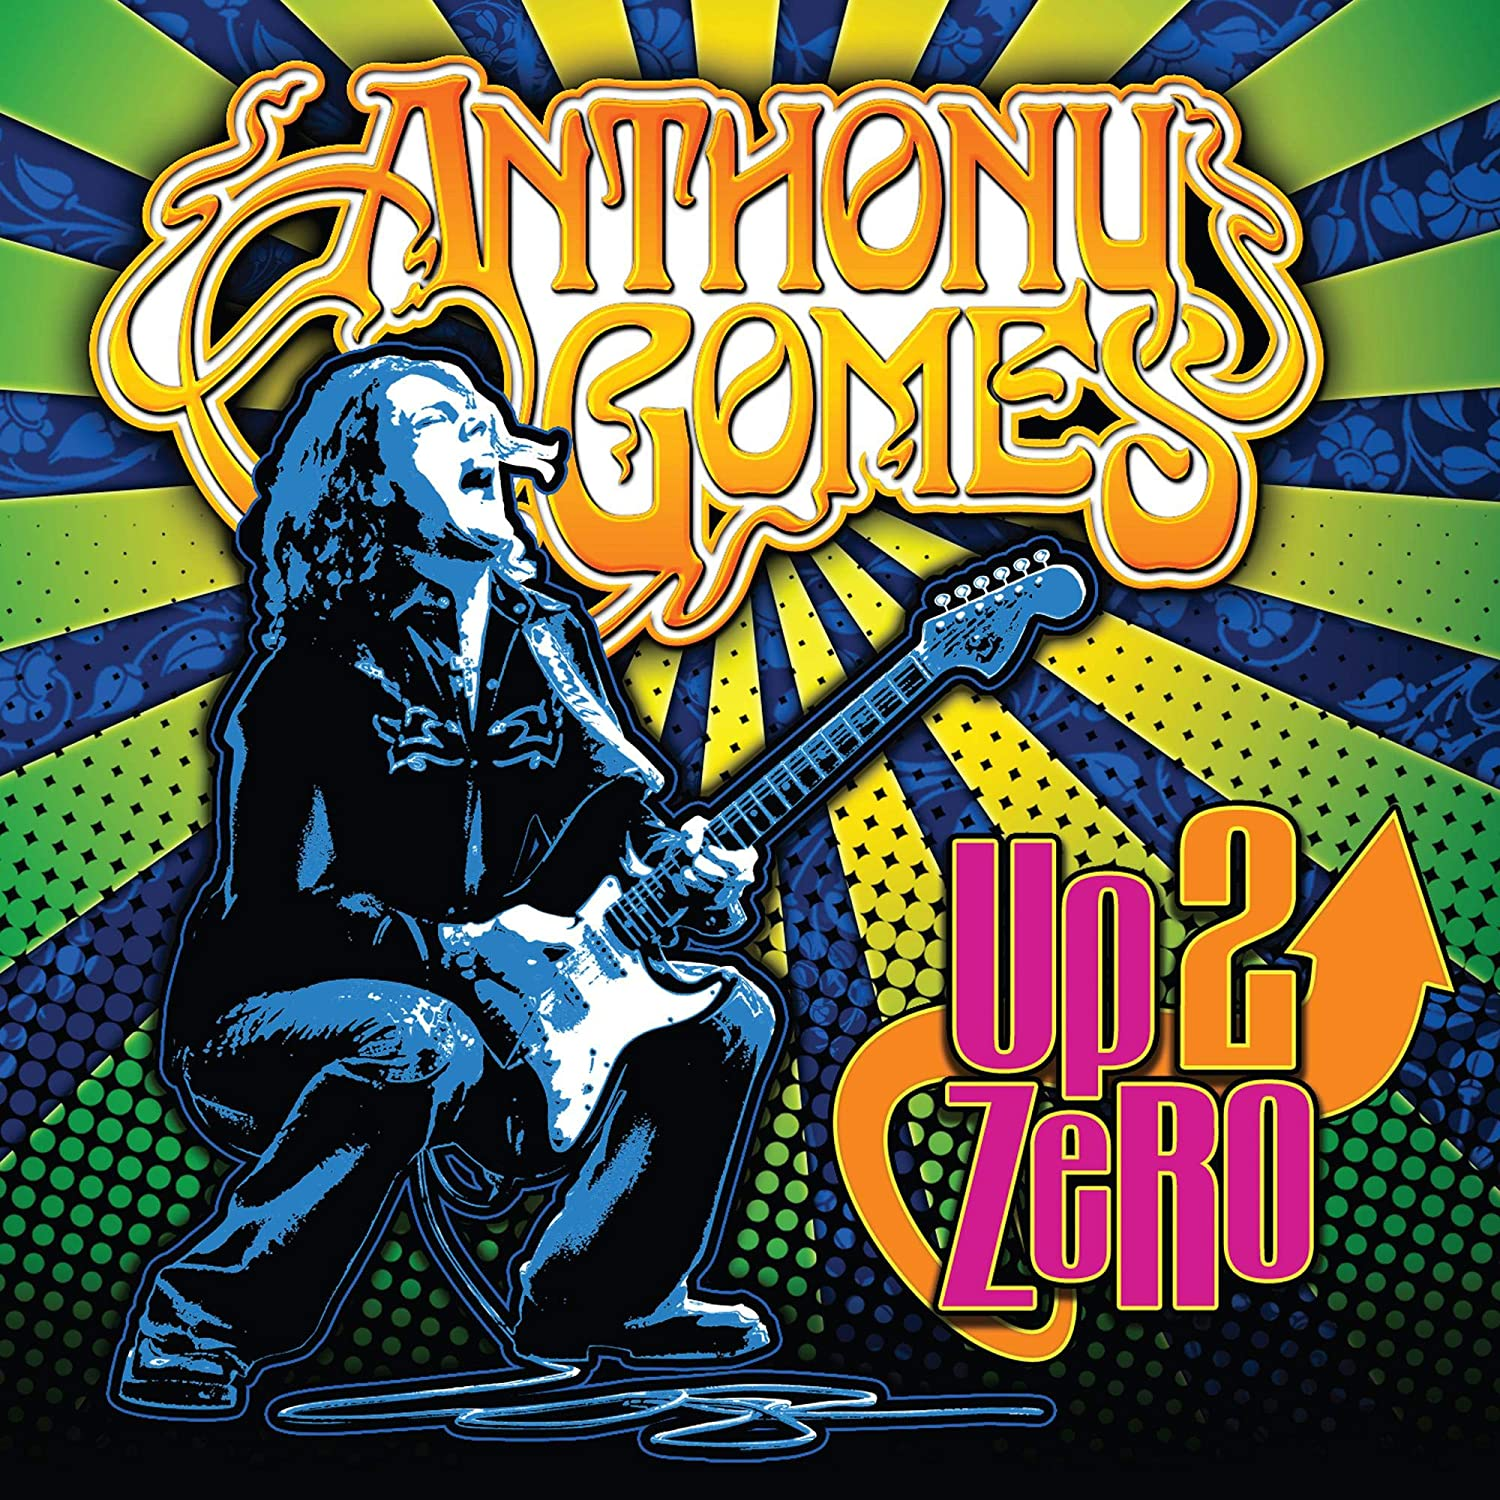 Anthony Gomes - Up 2 Zero [CD] - Urban Vinyl | Records, Headphones, and more.